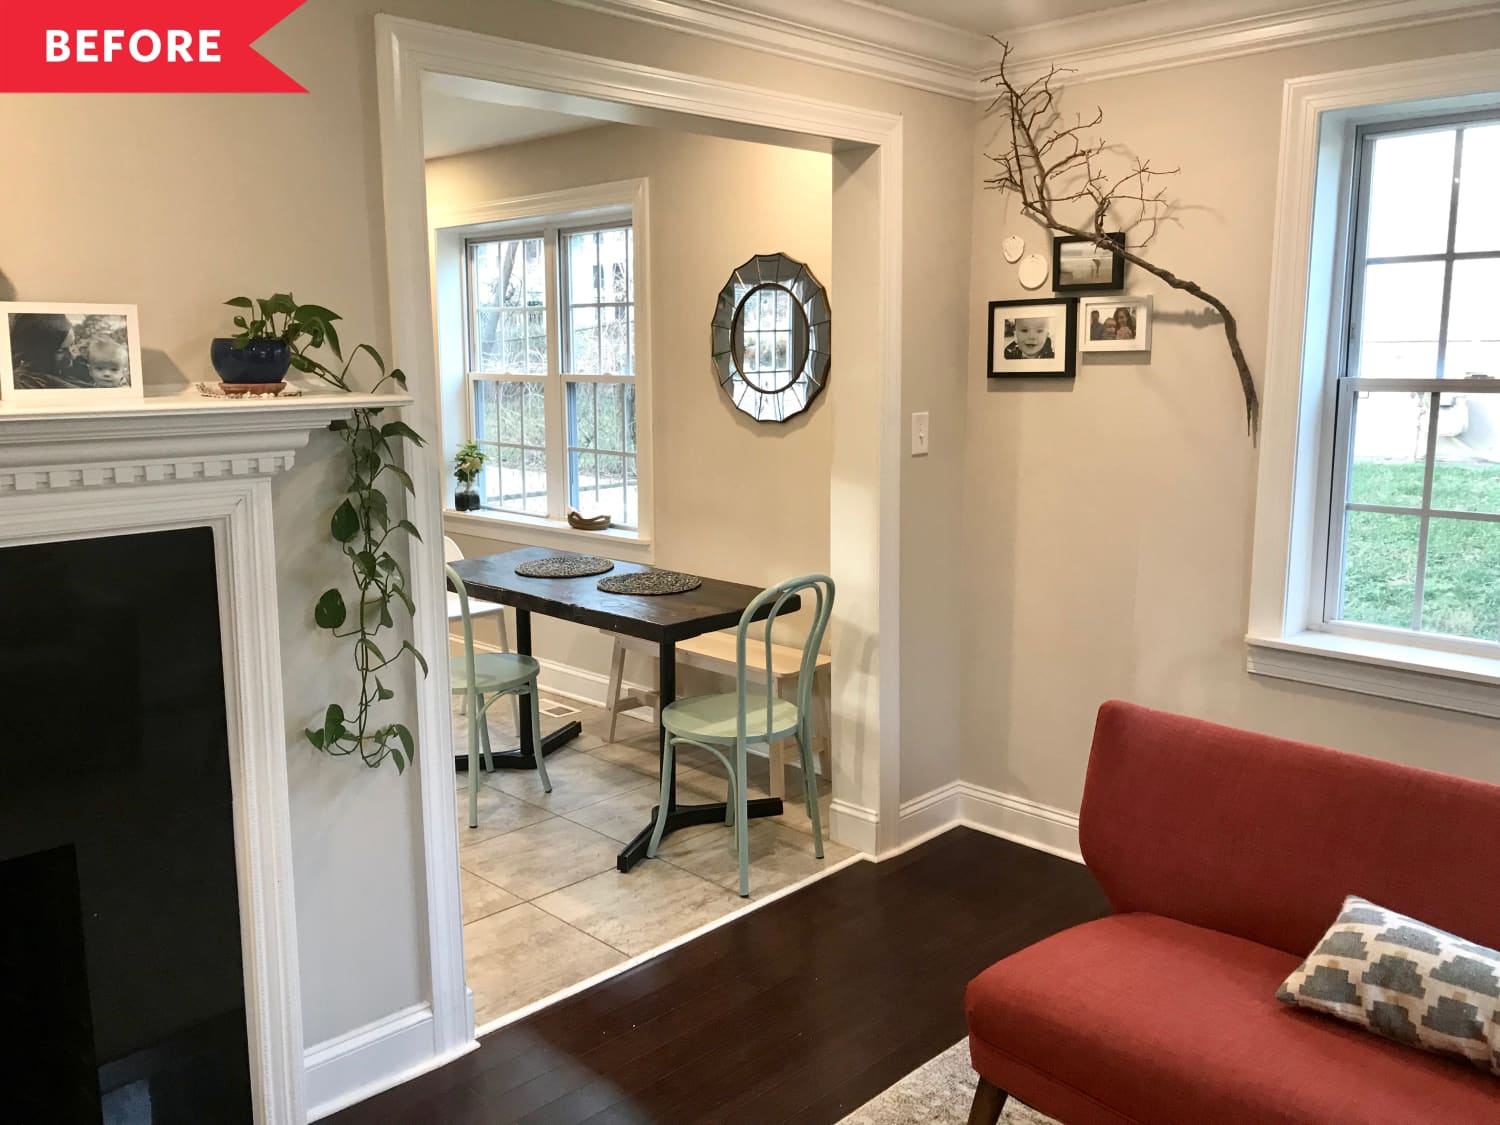 Before & After: An $1,800 DIY Redo Brilliantly Maximizes the Space in This Tiny Dining Area